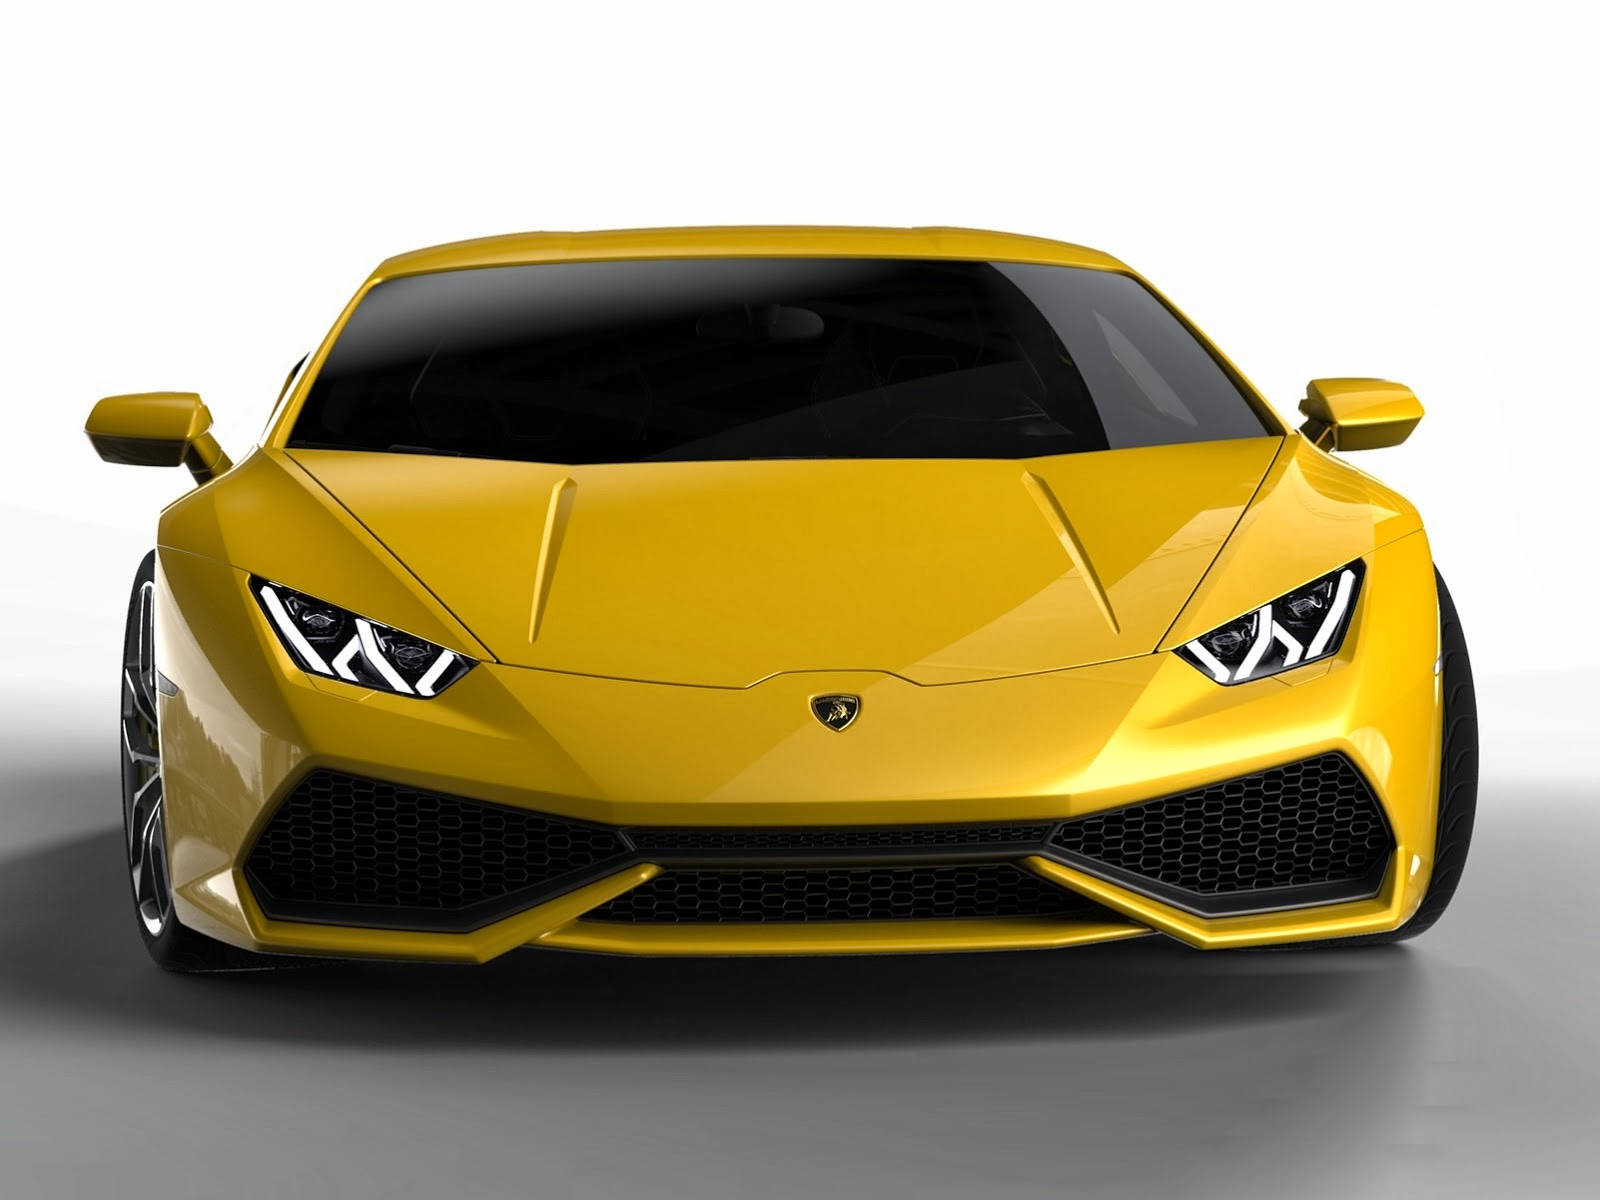 new lamborghini huracan lp610 4 super car wallpaper. Black Bedroom Furniture Sets. Home Design Ideas